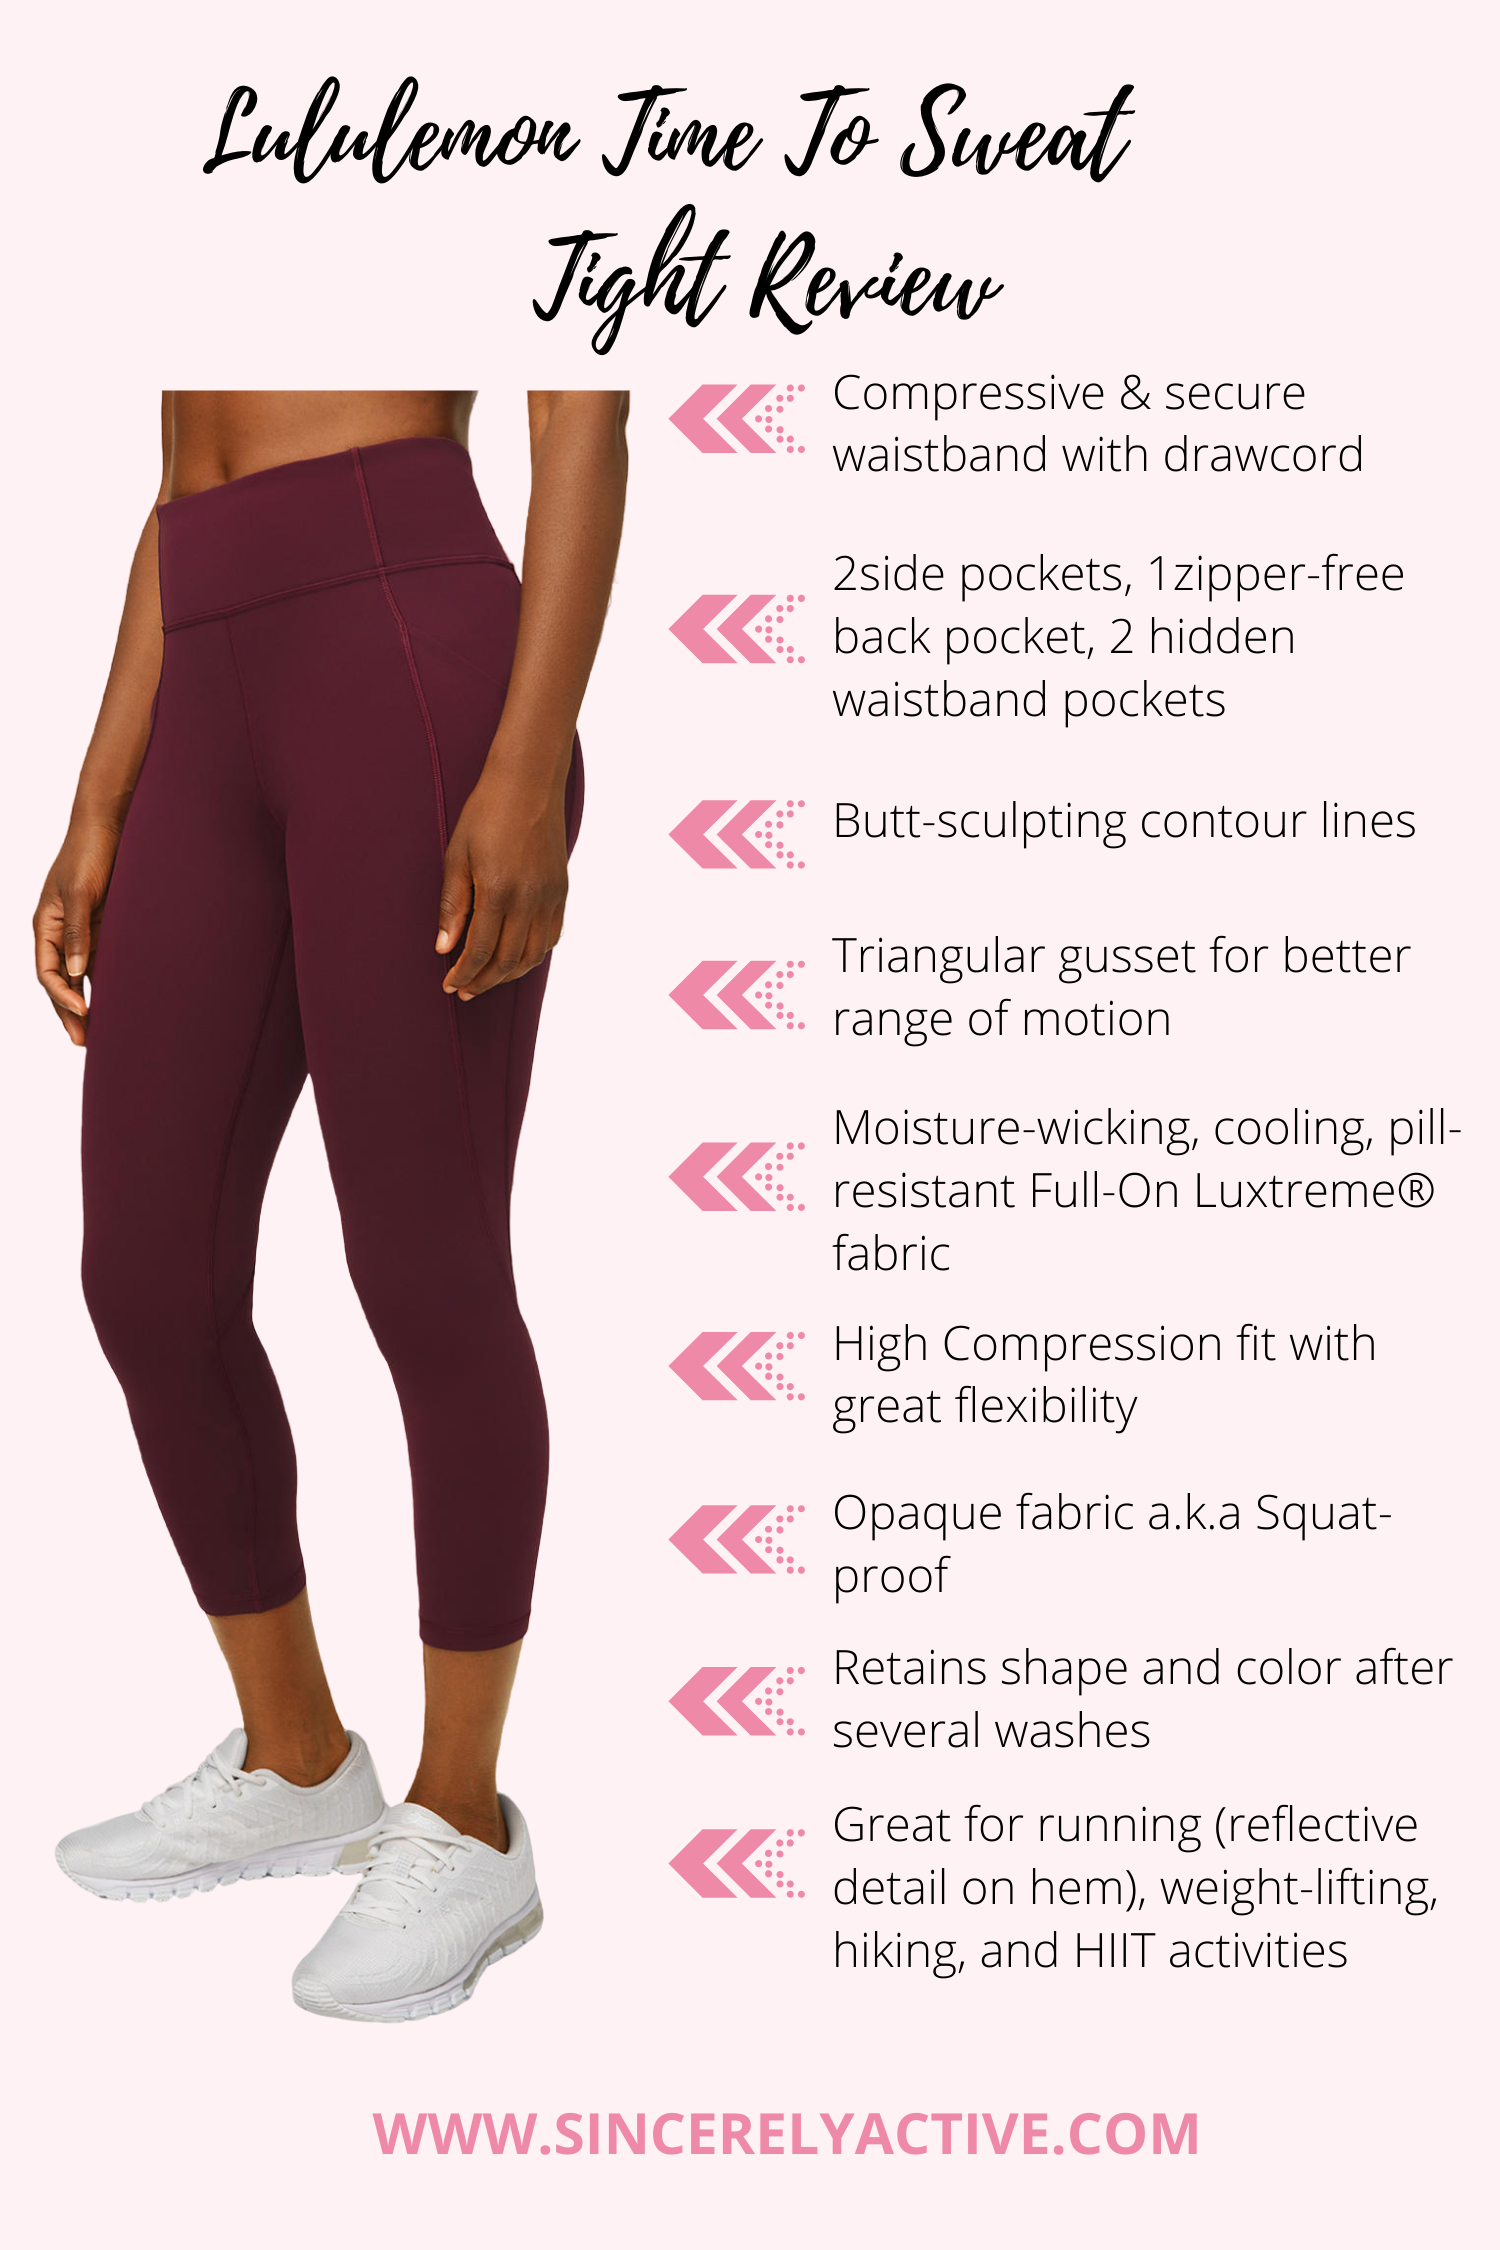 Lululemon time To Sweat legging review